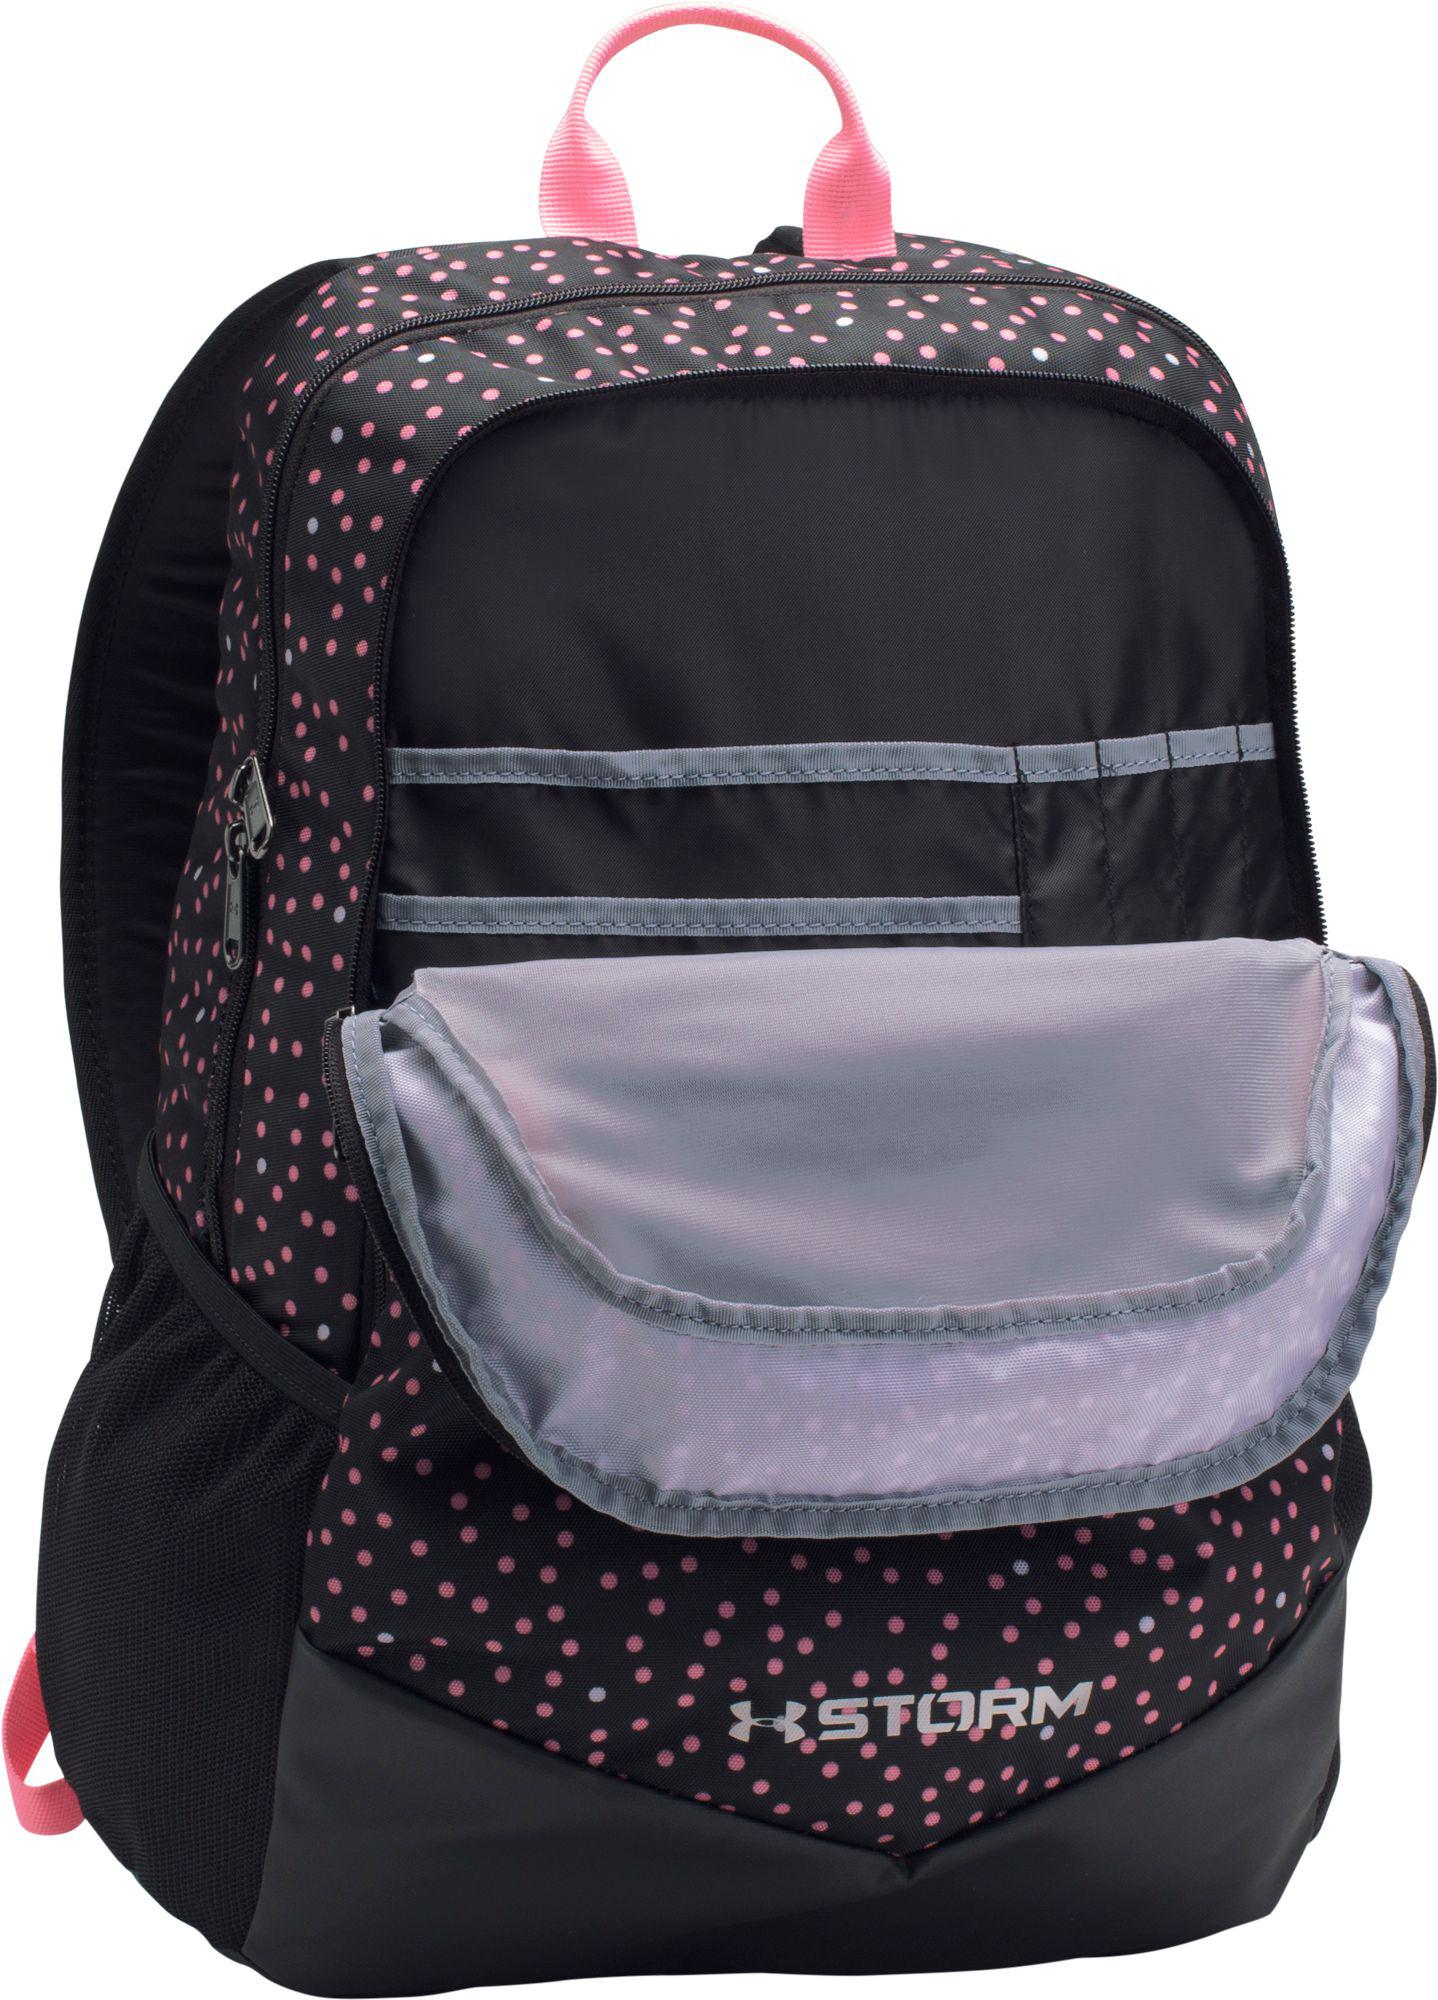 74b894b6b0 Lyst - Under Armour Youth Scrimmage Backpack in Black